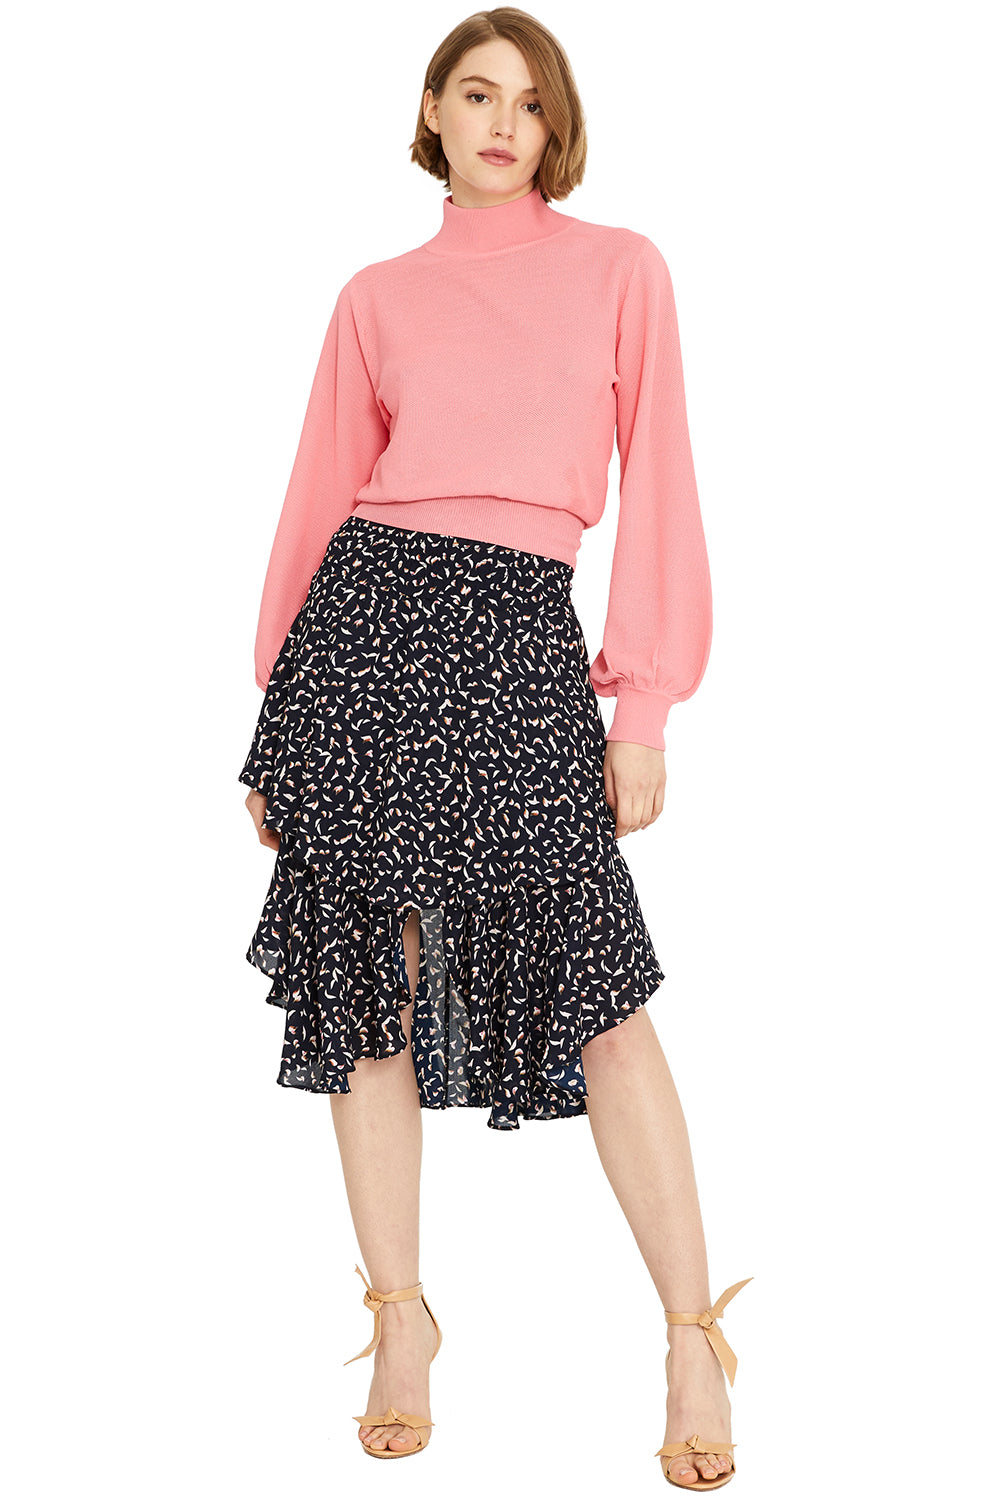 SONORA SKIRT - MISA Los Angeles